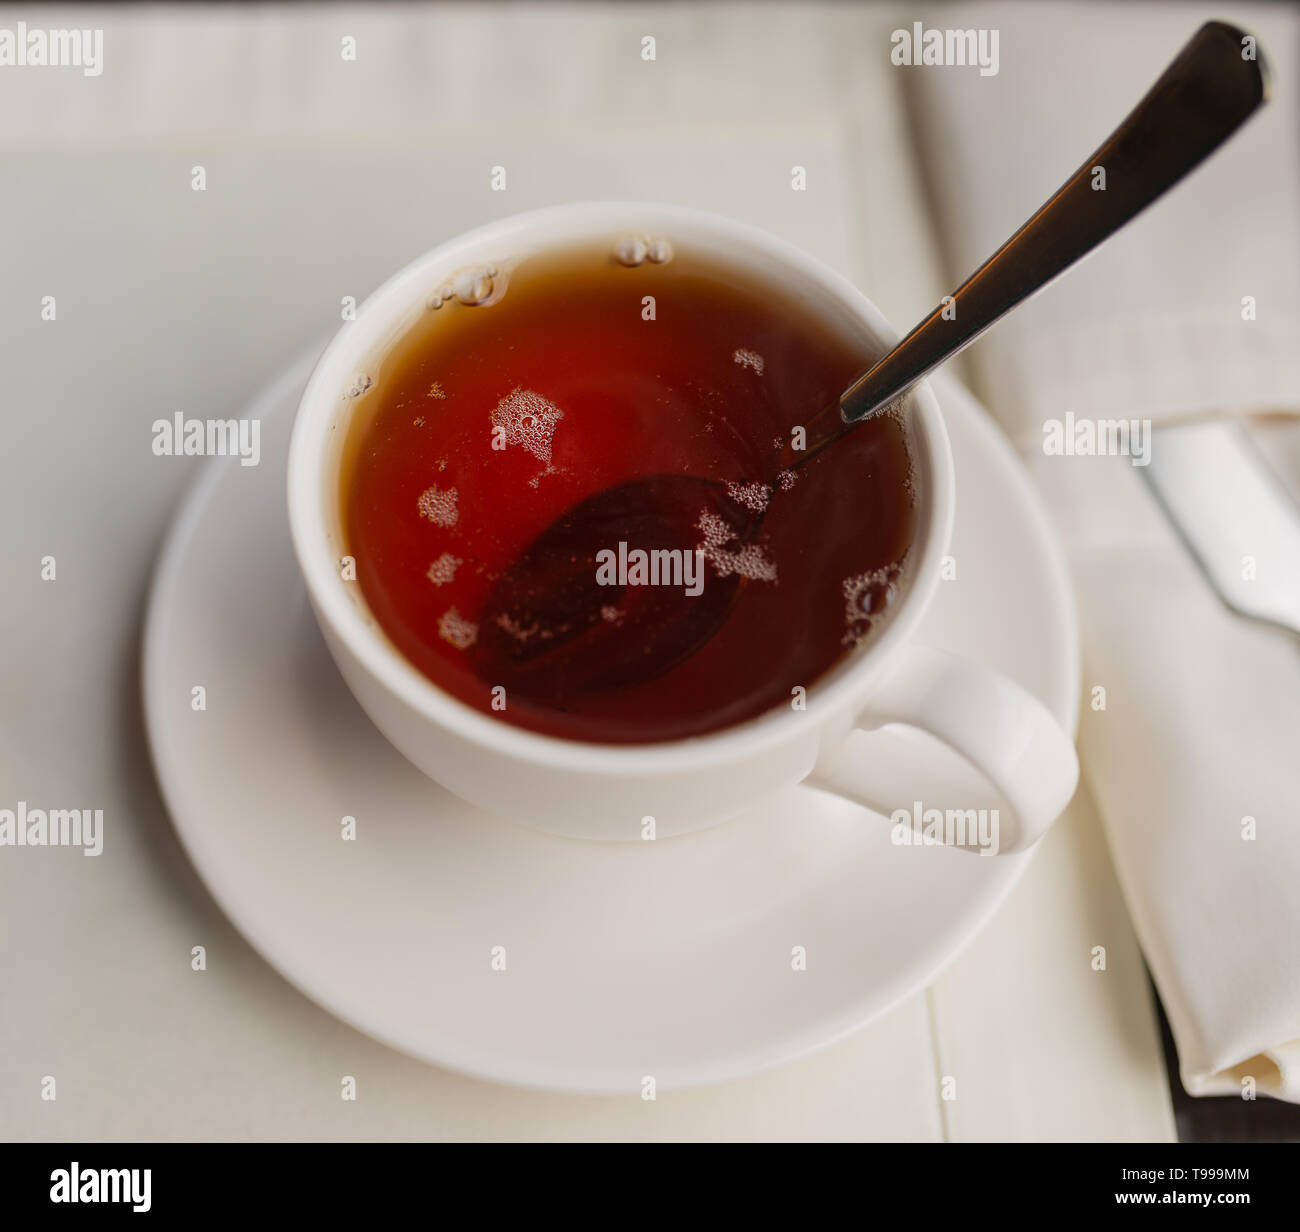 Cup of black tea on a table in a cafe. Selective focus. - Stock Image